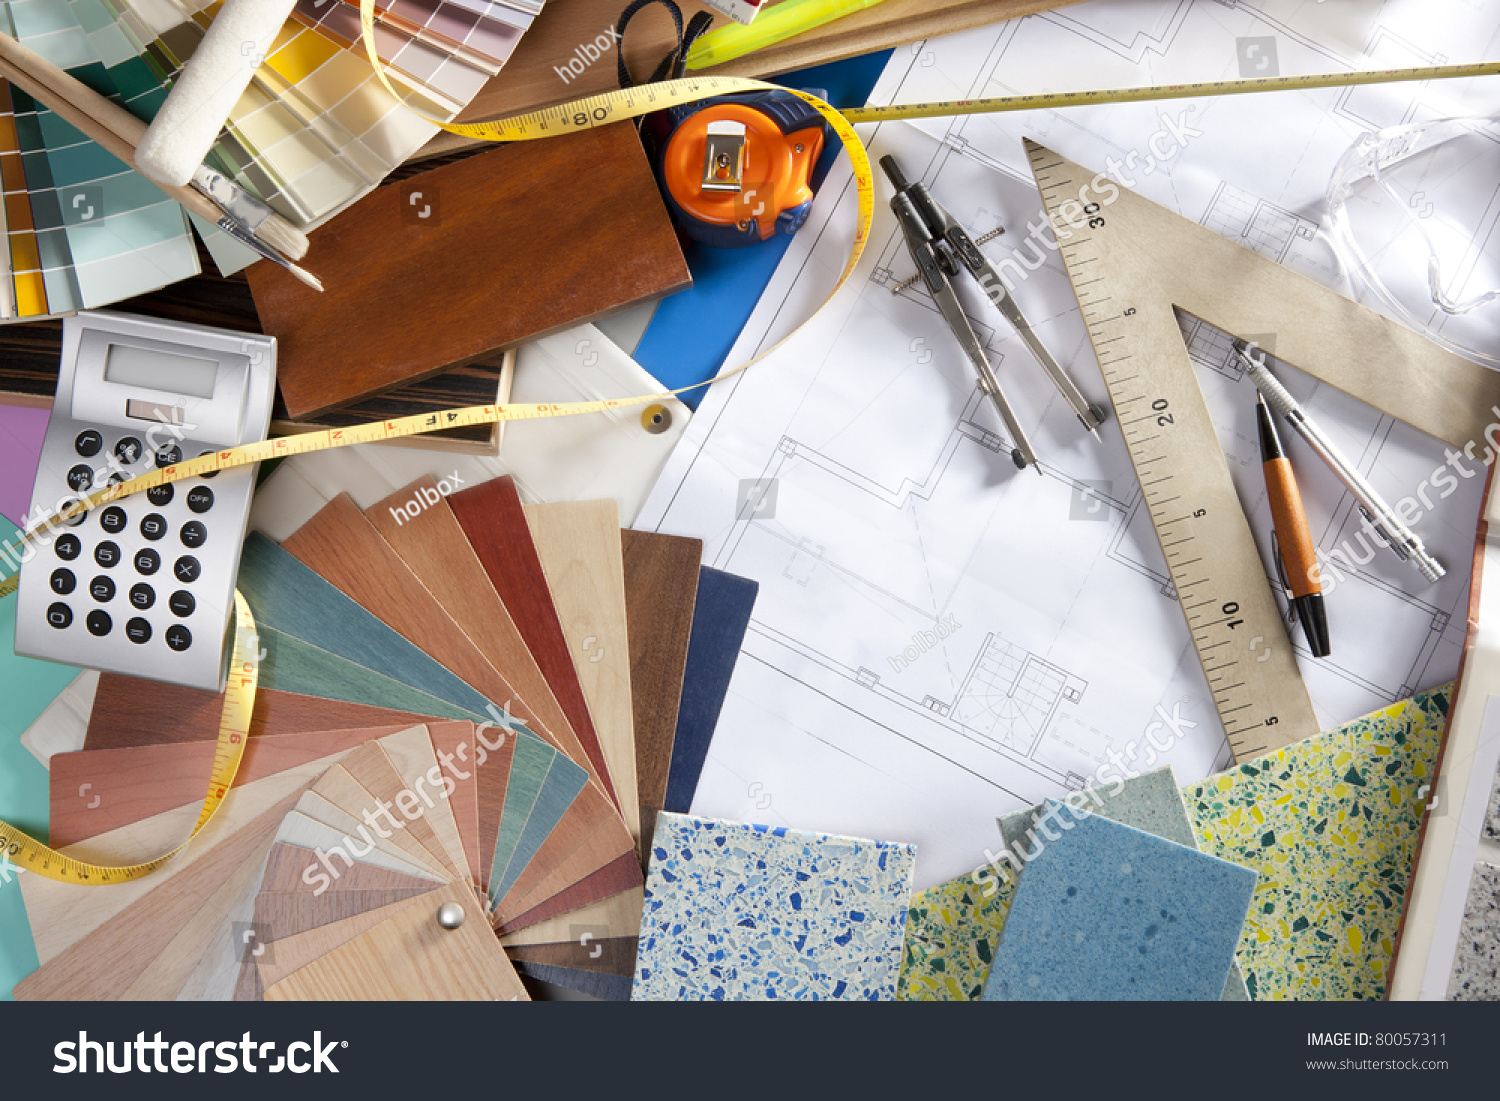 Architect Or Interior Designer Workplace Desk And Design Tools With Lots Of Construction